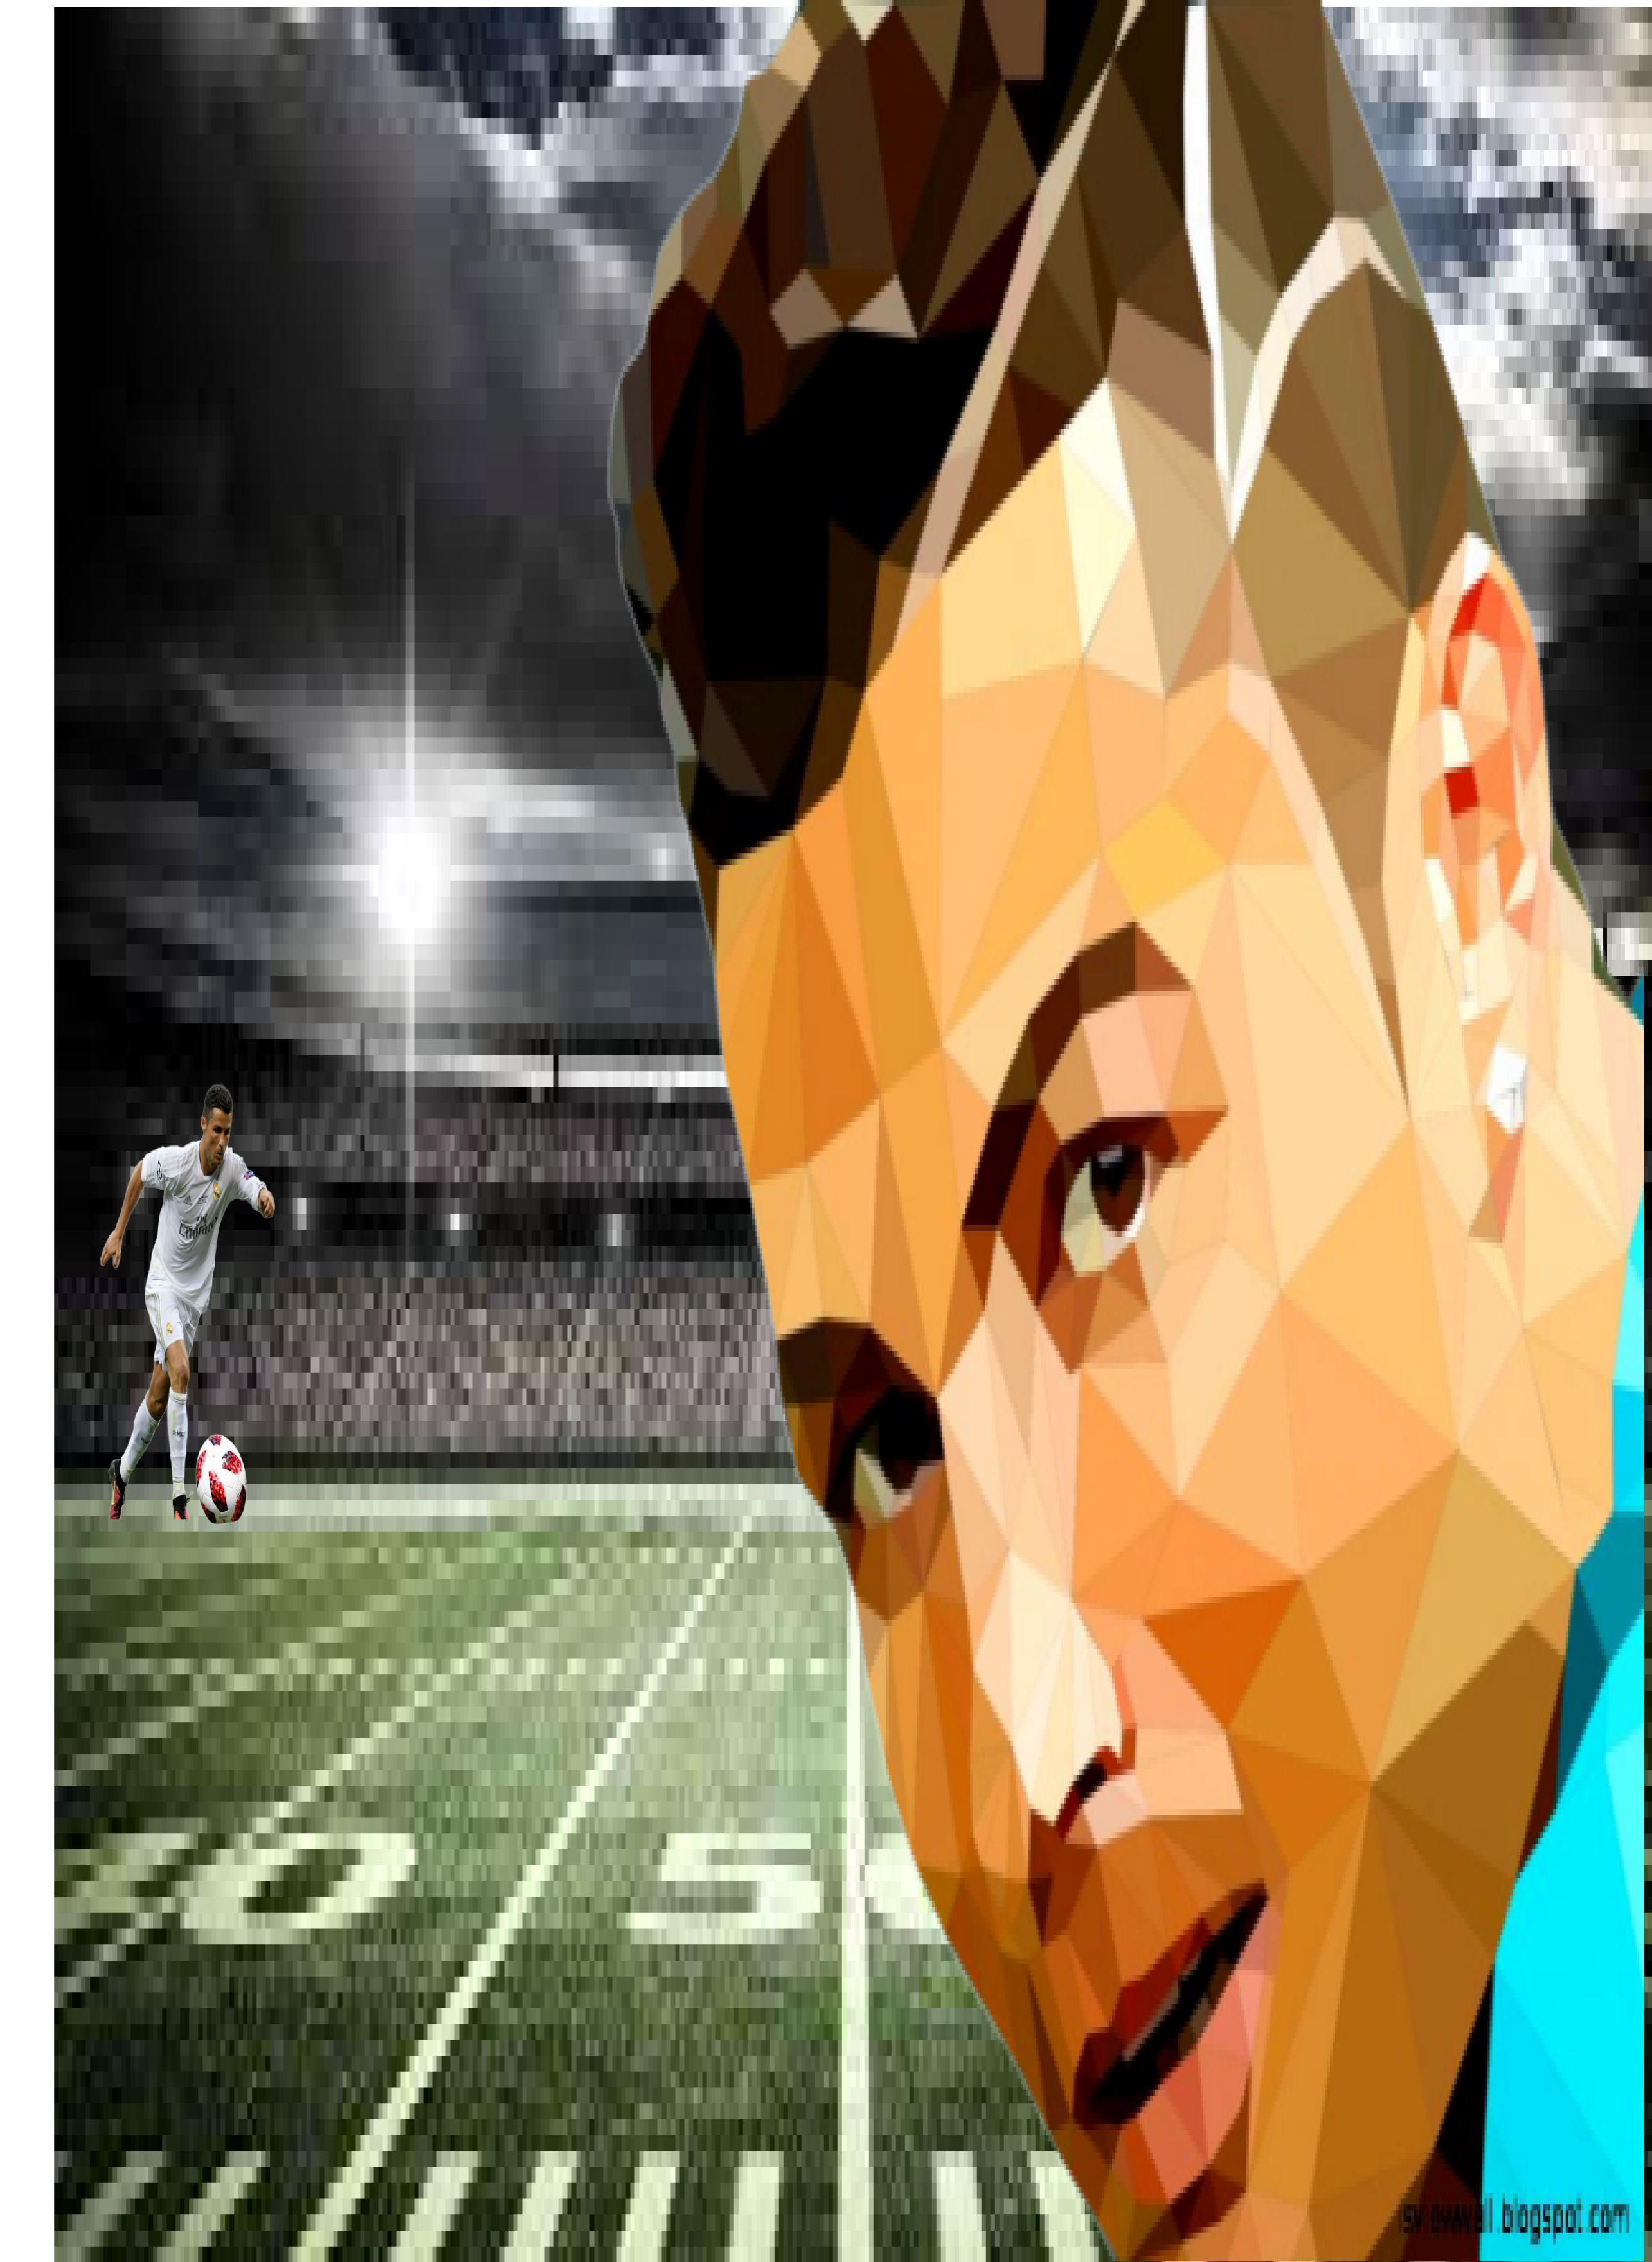 It a edit photo of Ronaldo. I can do any kind of photo editing